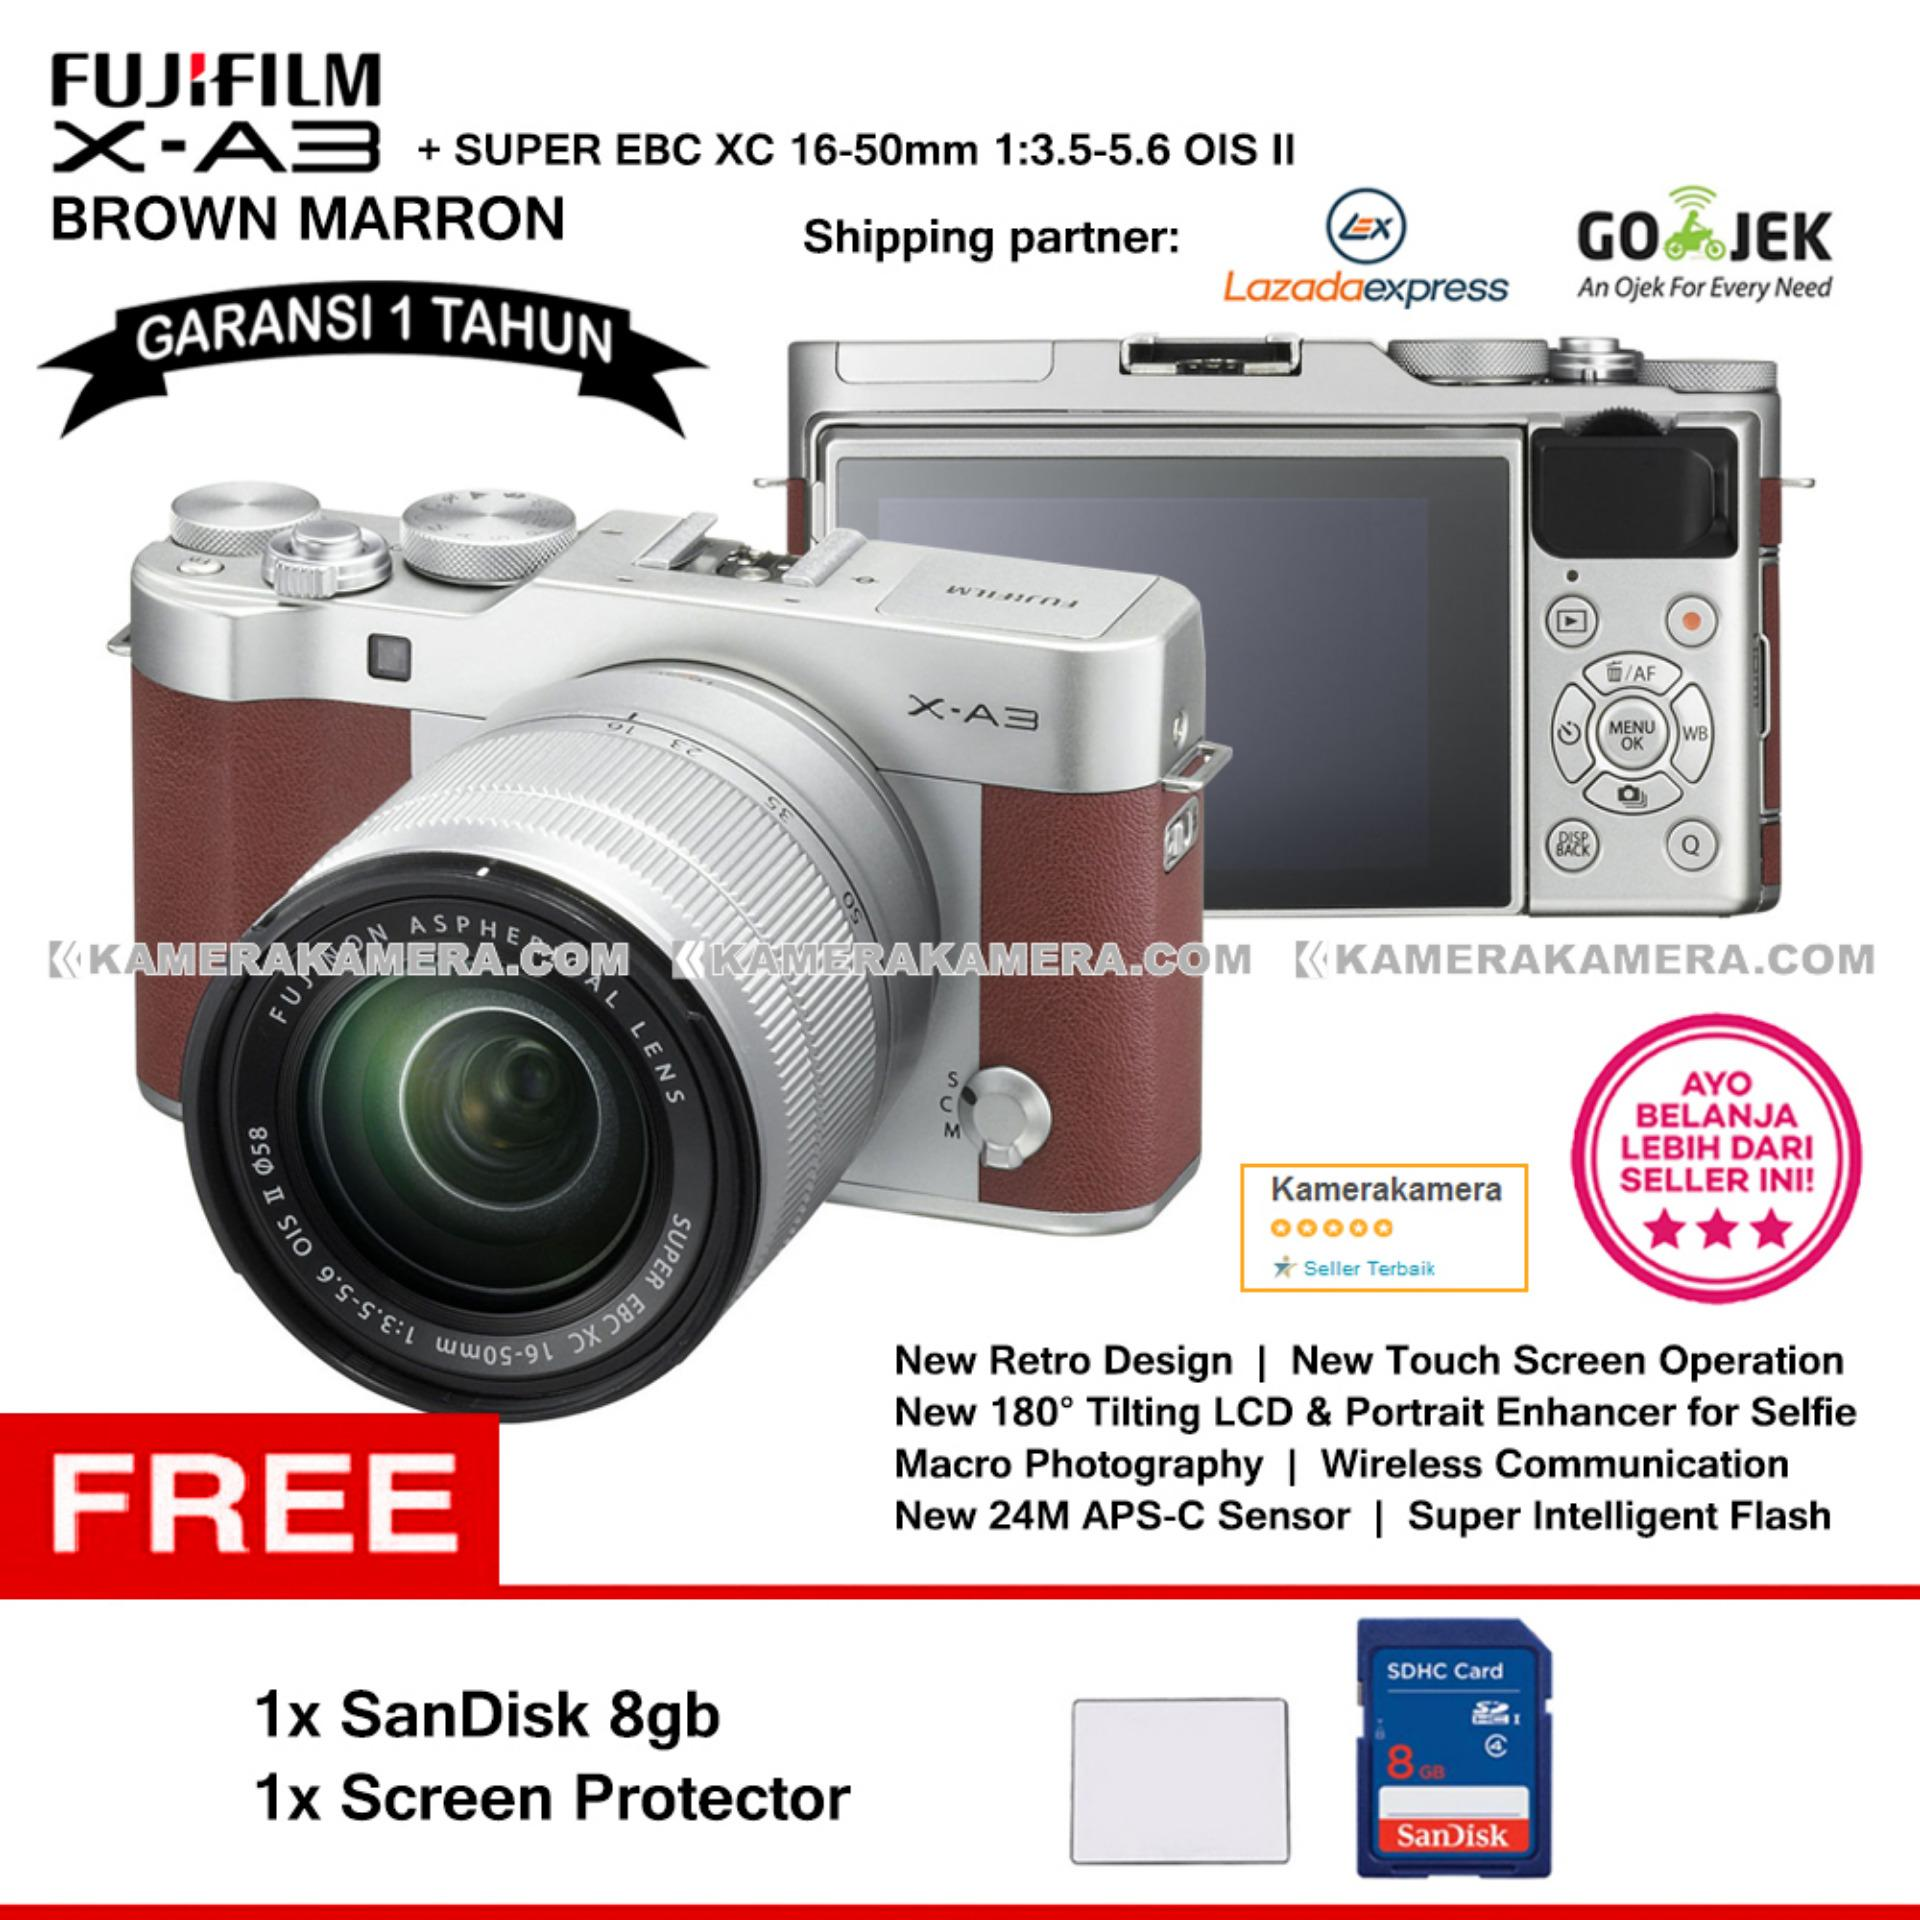 Harga Jual Fujifilm X A5 Kit 15 45mm Kamera Mirrorless Silver A3 Xc16 50mm F35 56 Ois Ii Pink Mini8 Pwp Xf35mm F2 Macro Photography Xc 16 Wifi 24mp Touchscreen Lcd Camera Garansi